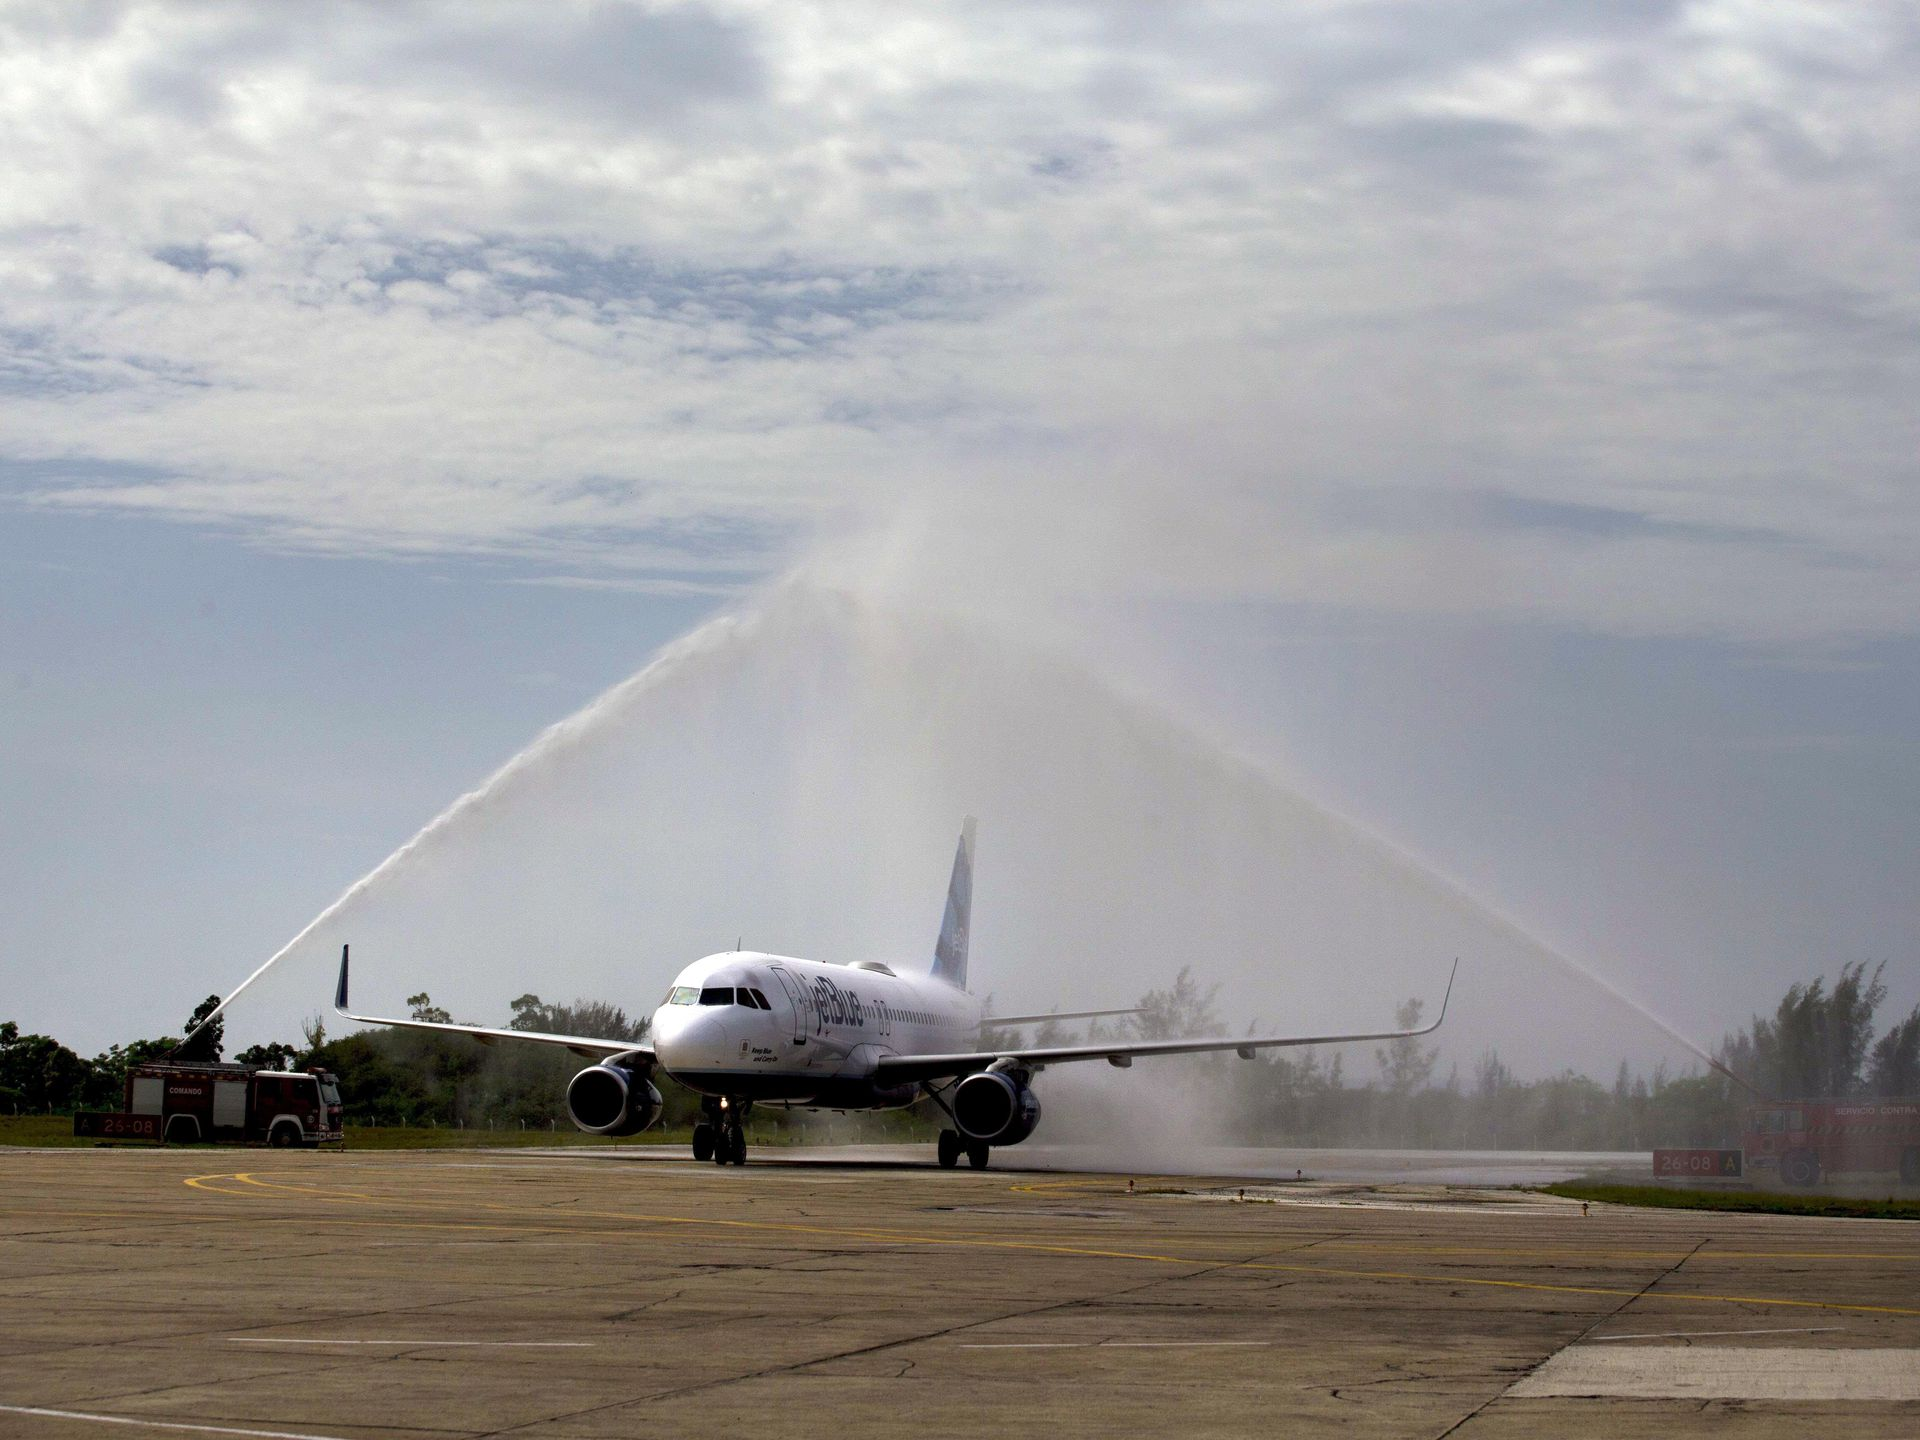 After landing in Santa Clara the JetBlue aeroplane received a ceremonial water canon shower from Cuban fire engines. Photo by USA Today.